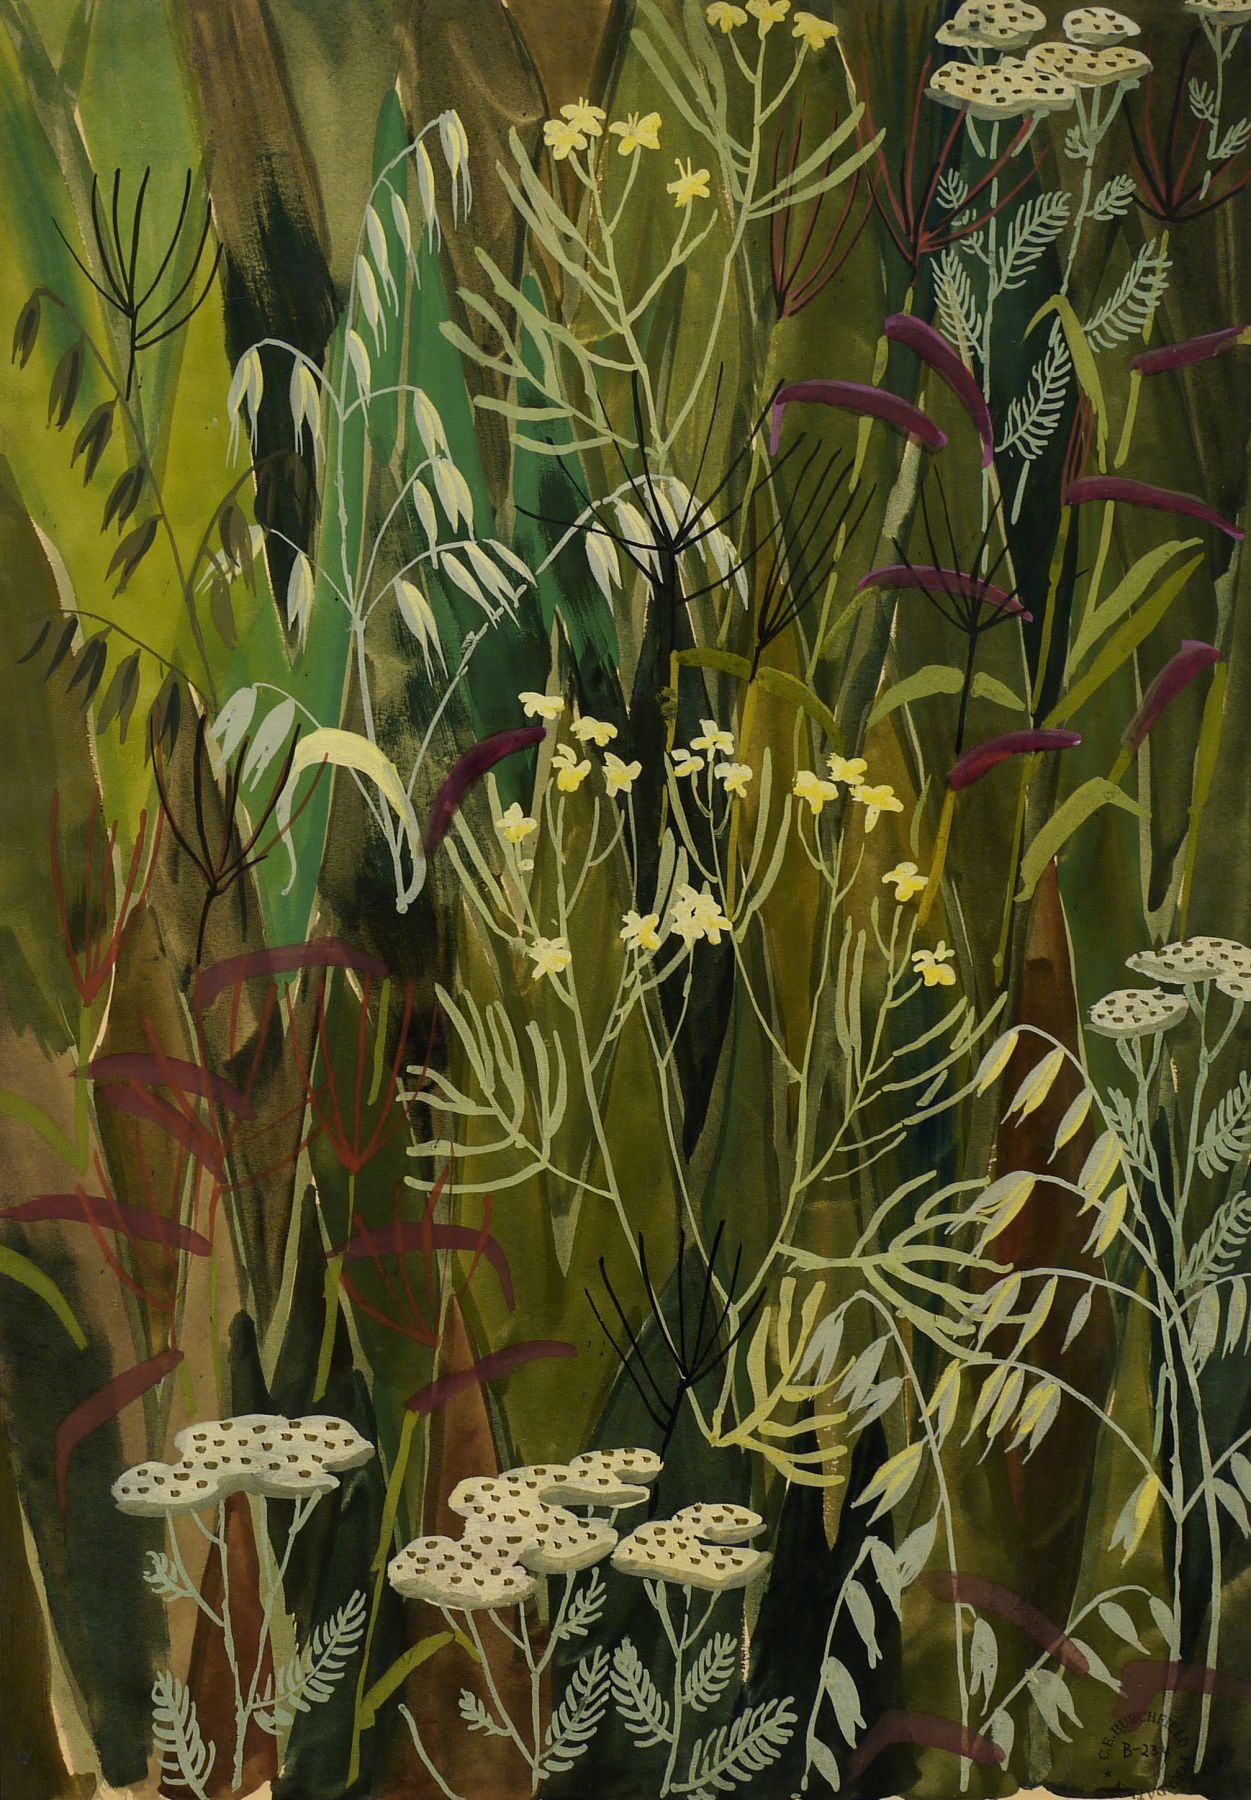 Charles Burchfield Wallpaper Design No. 3, 1922-28